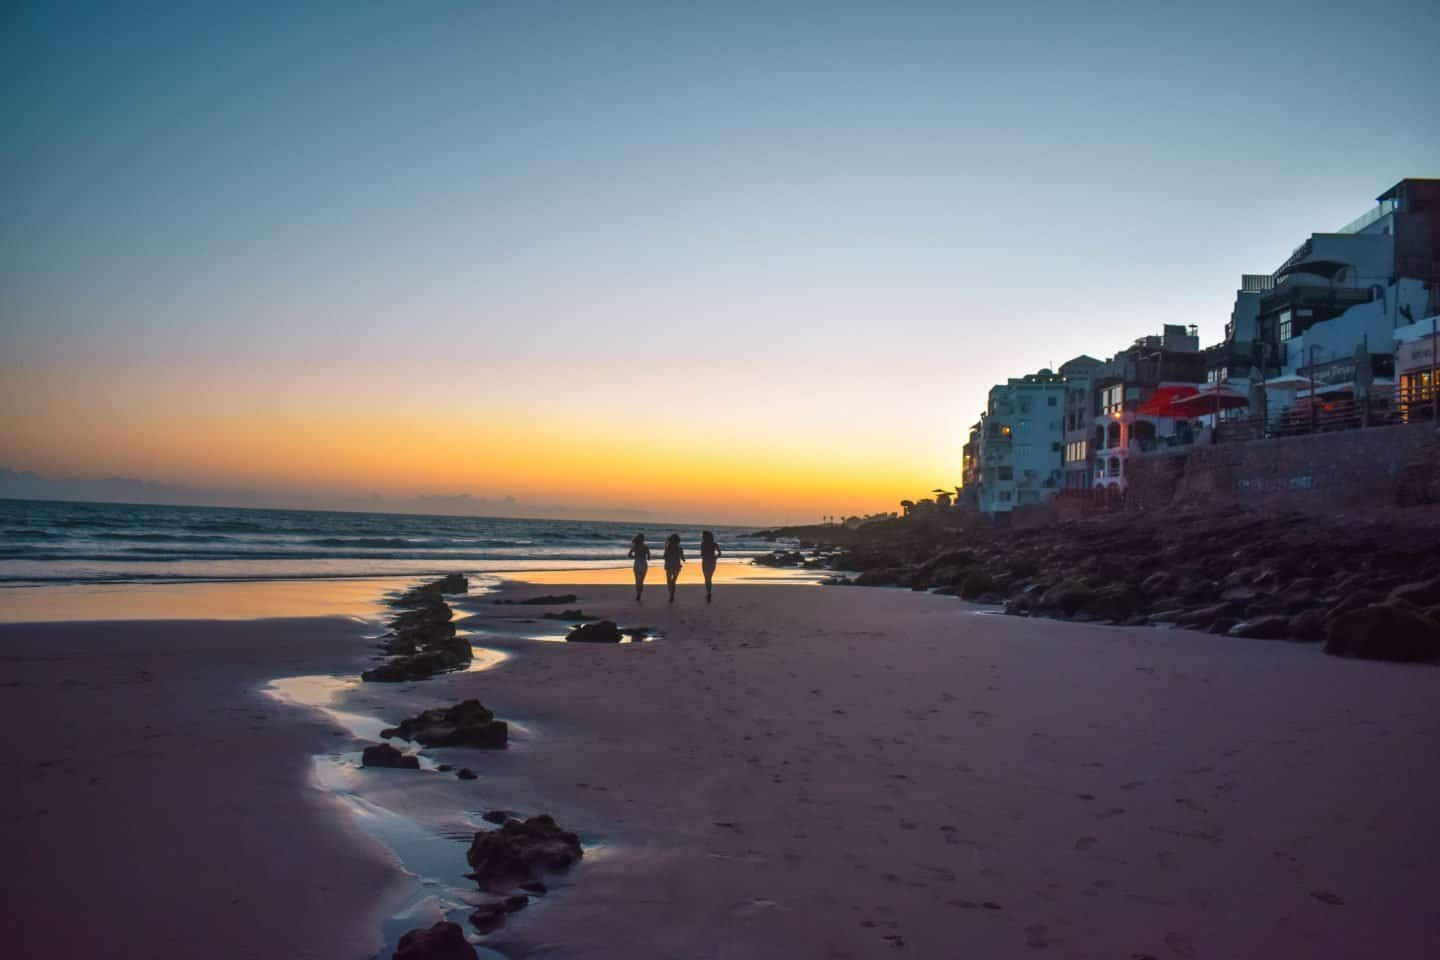 sunset in Taghazout